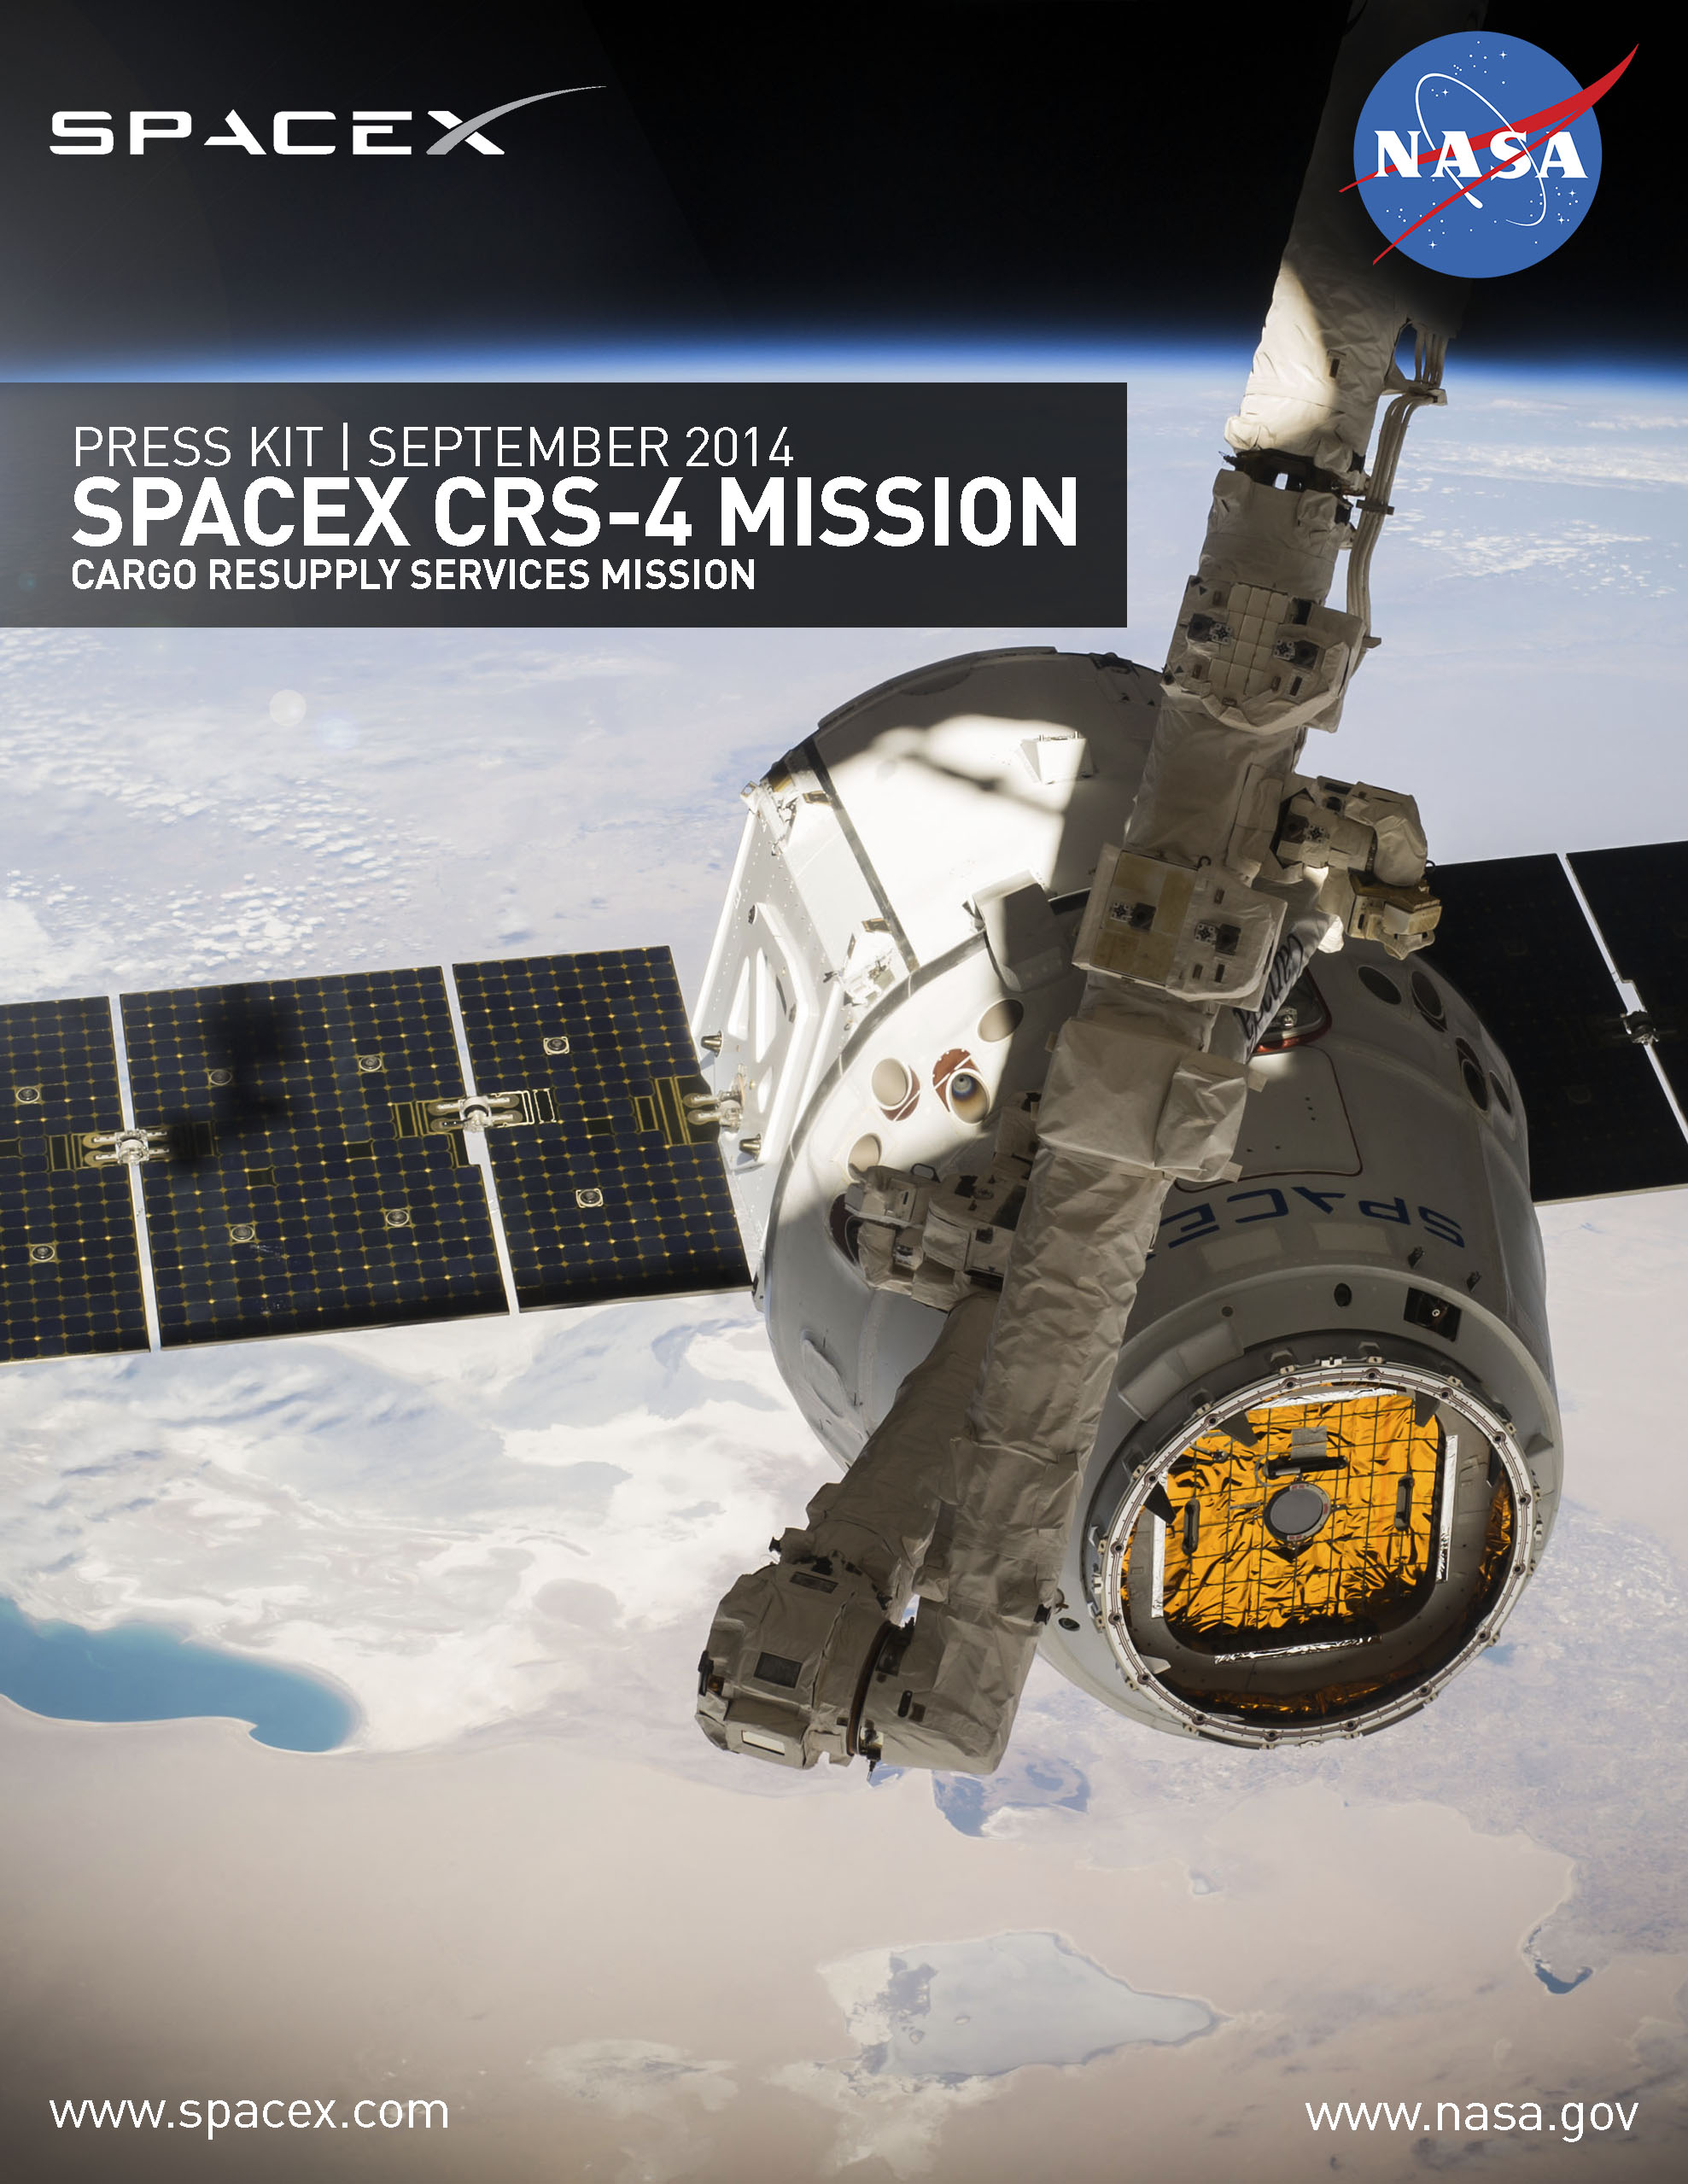 spacex crs 4 logo - photo #23